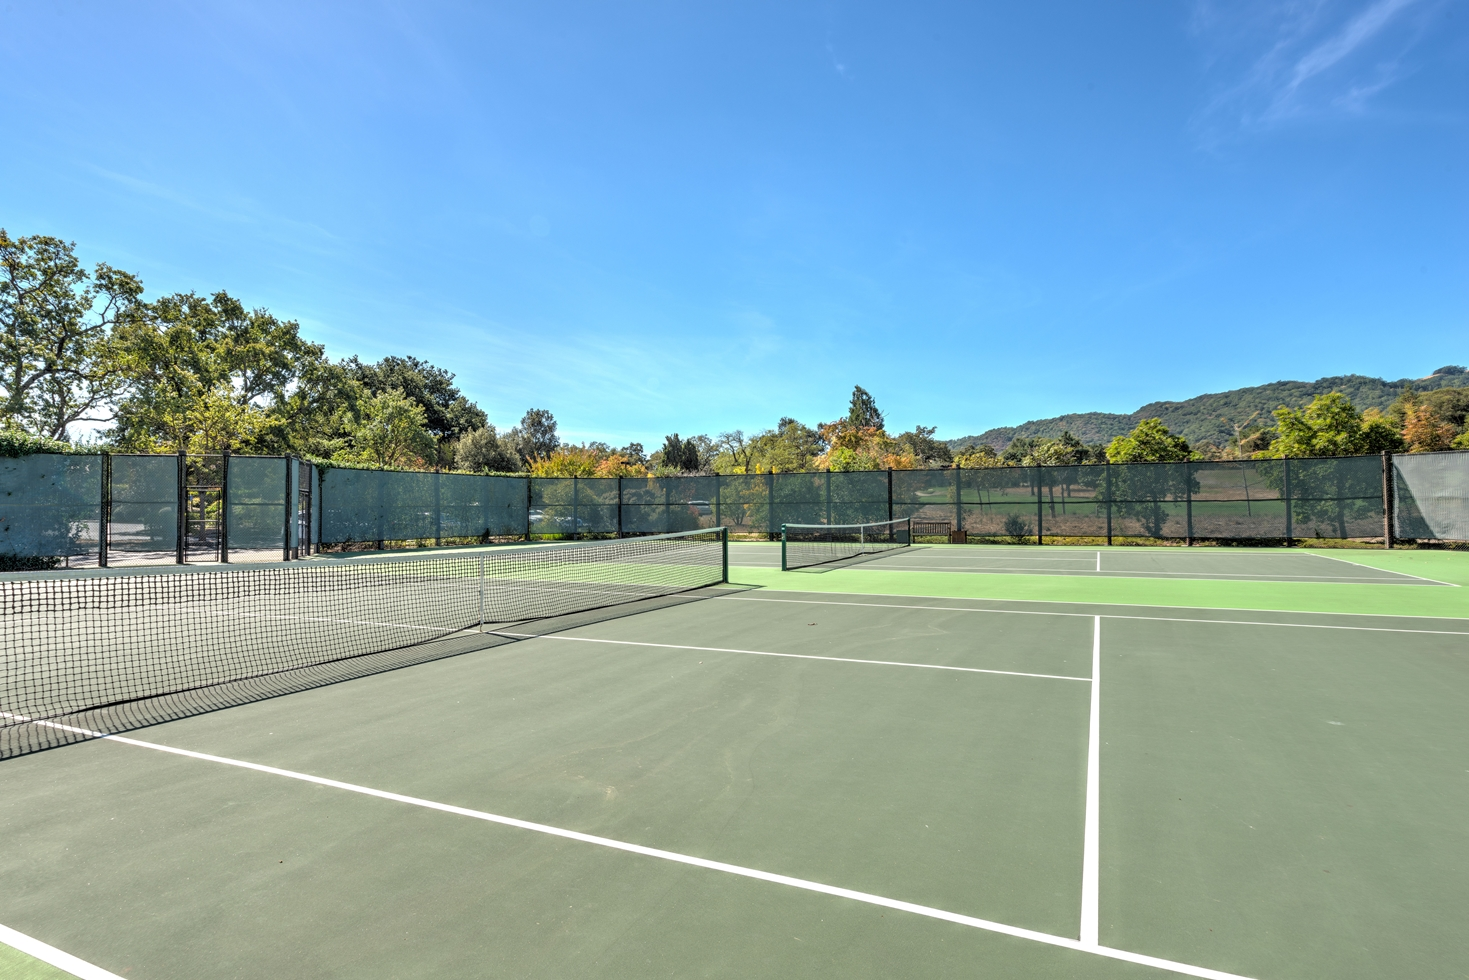 Tennis court at Sonoma Golf Club